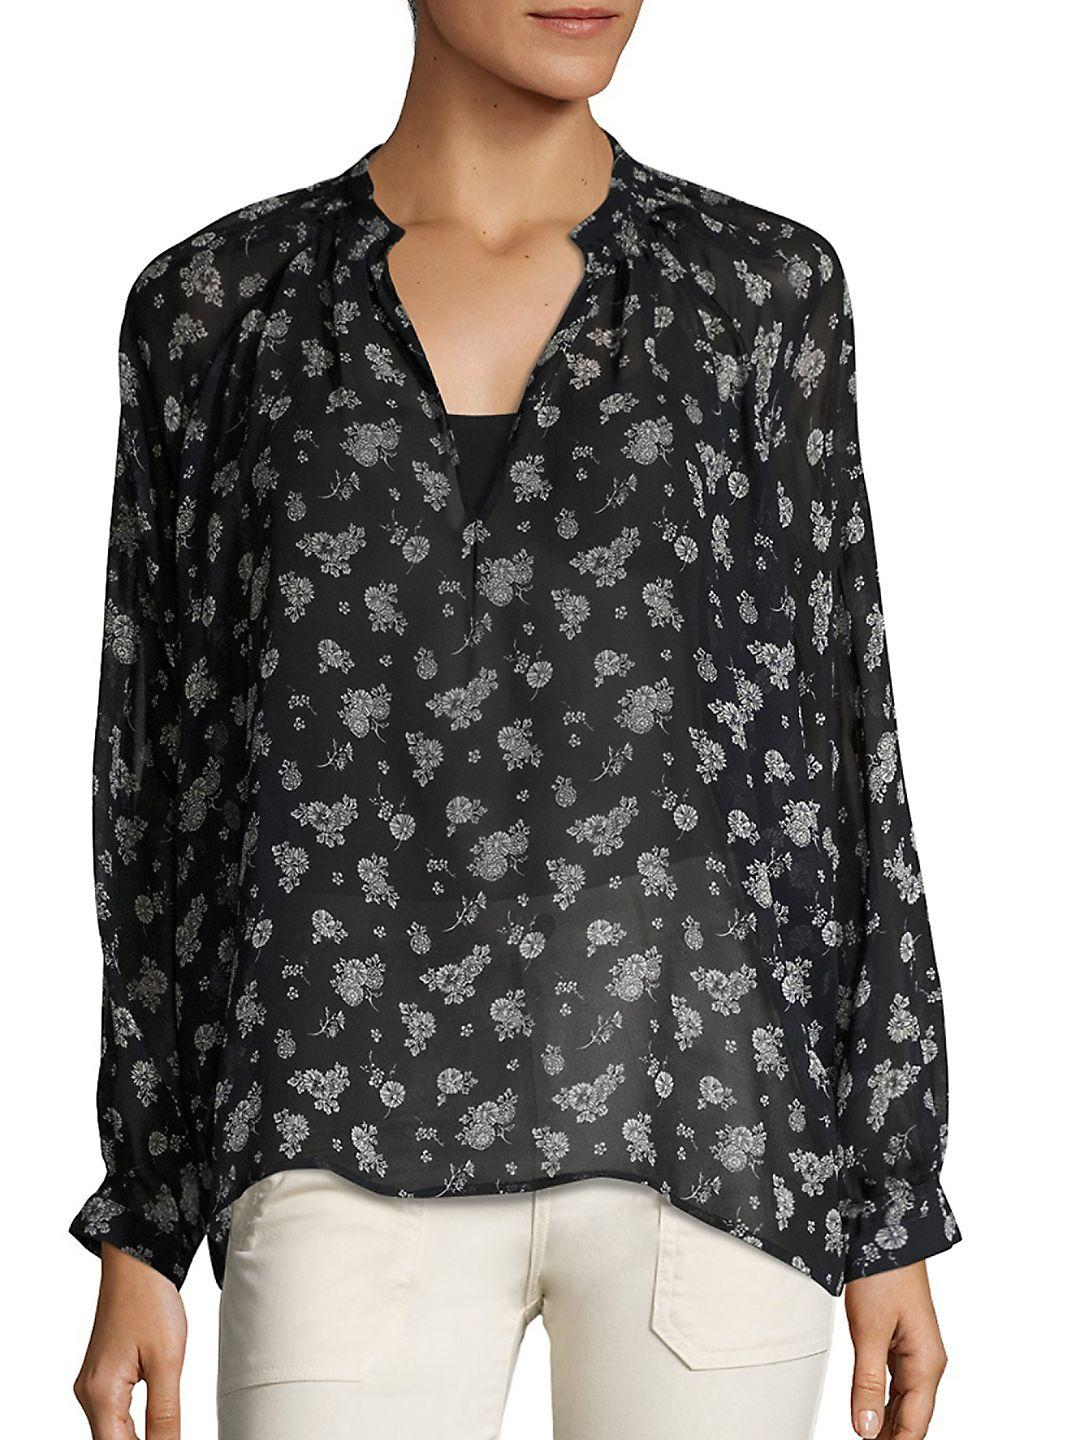 Floral-printed silk blouse Vince Clearance Cost Clearance Official Outlet Manchester Buy Cheap Cheapest kUb9J